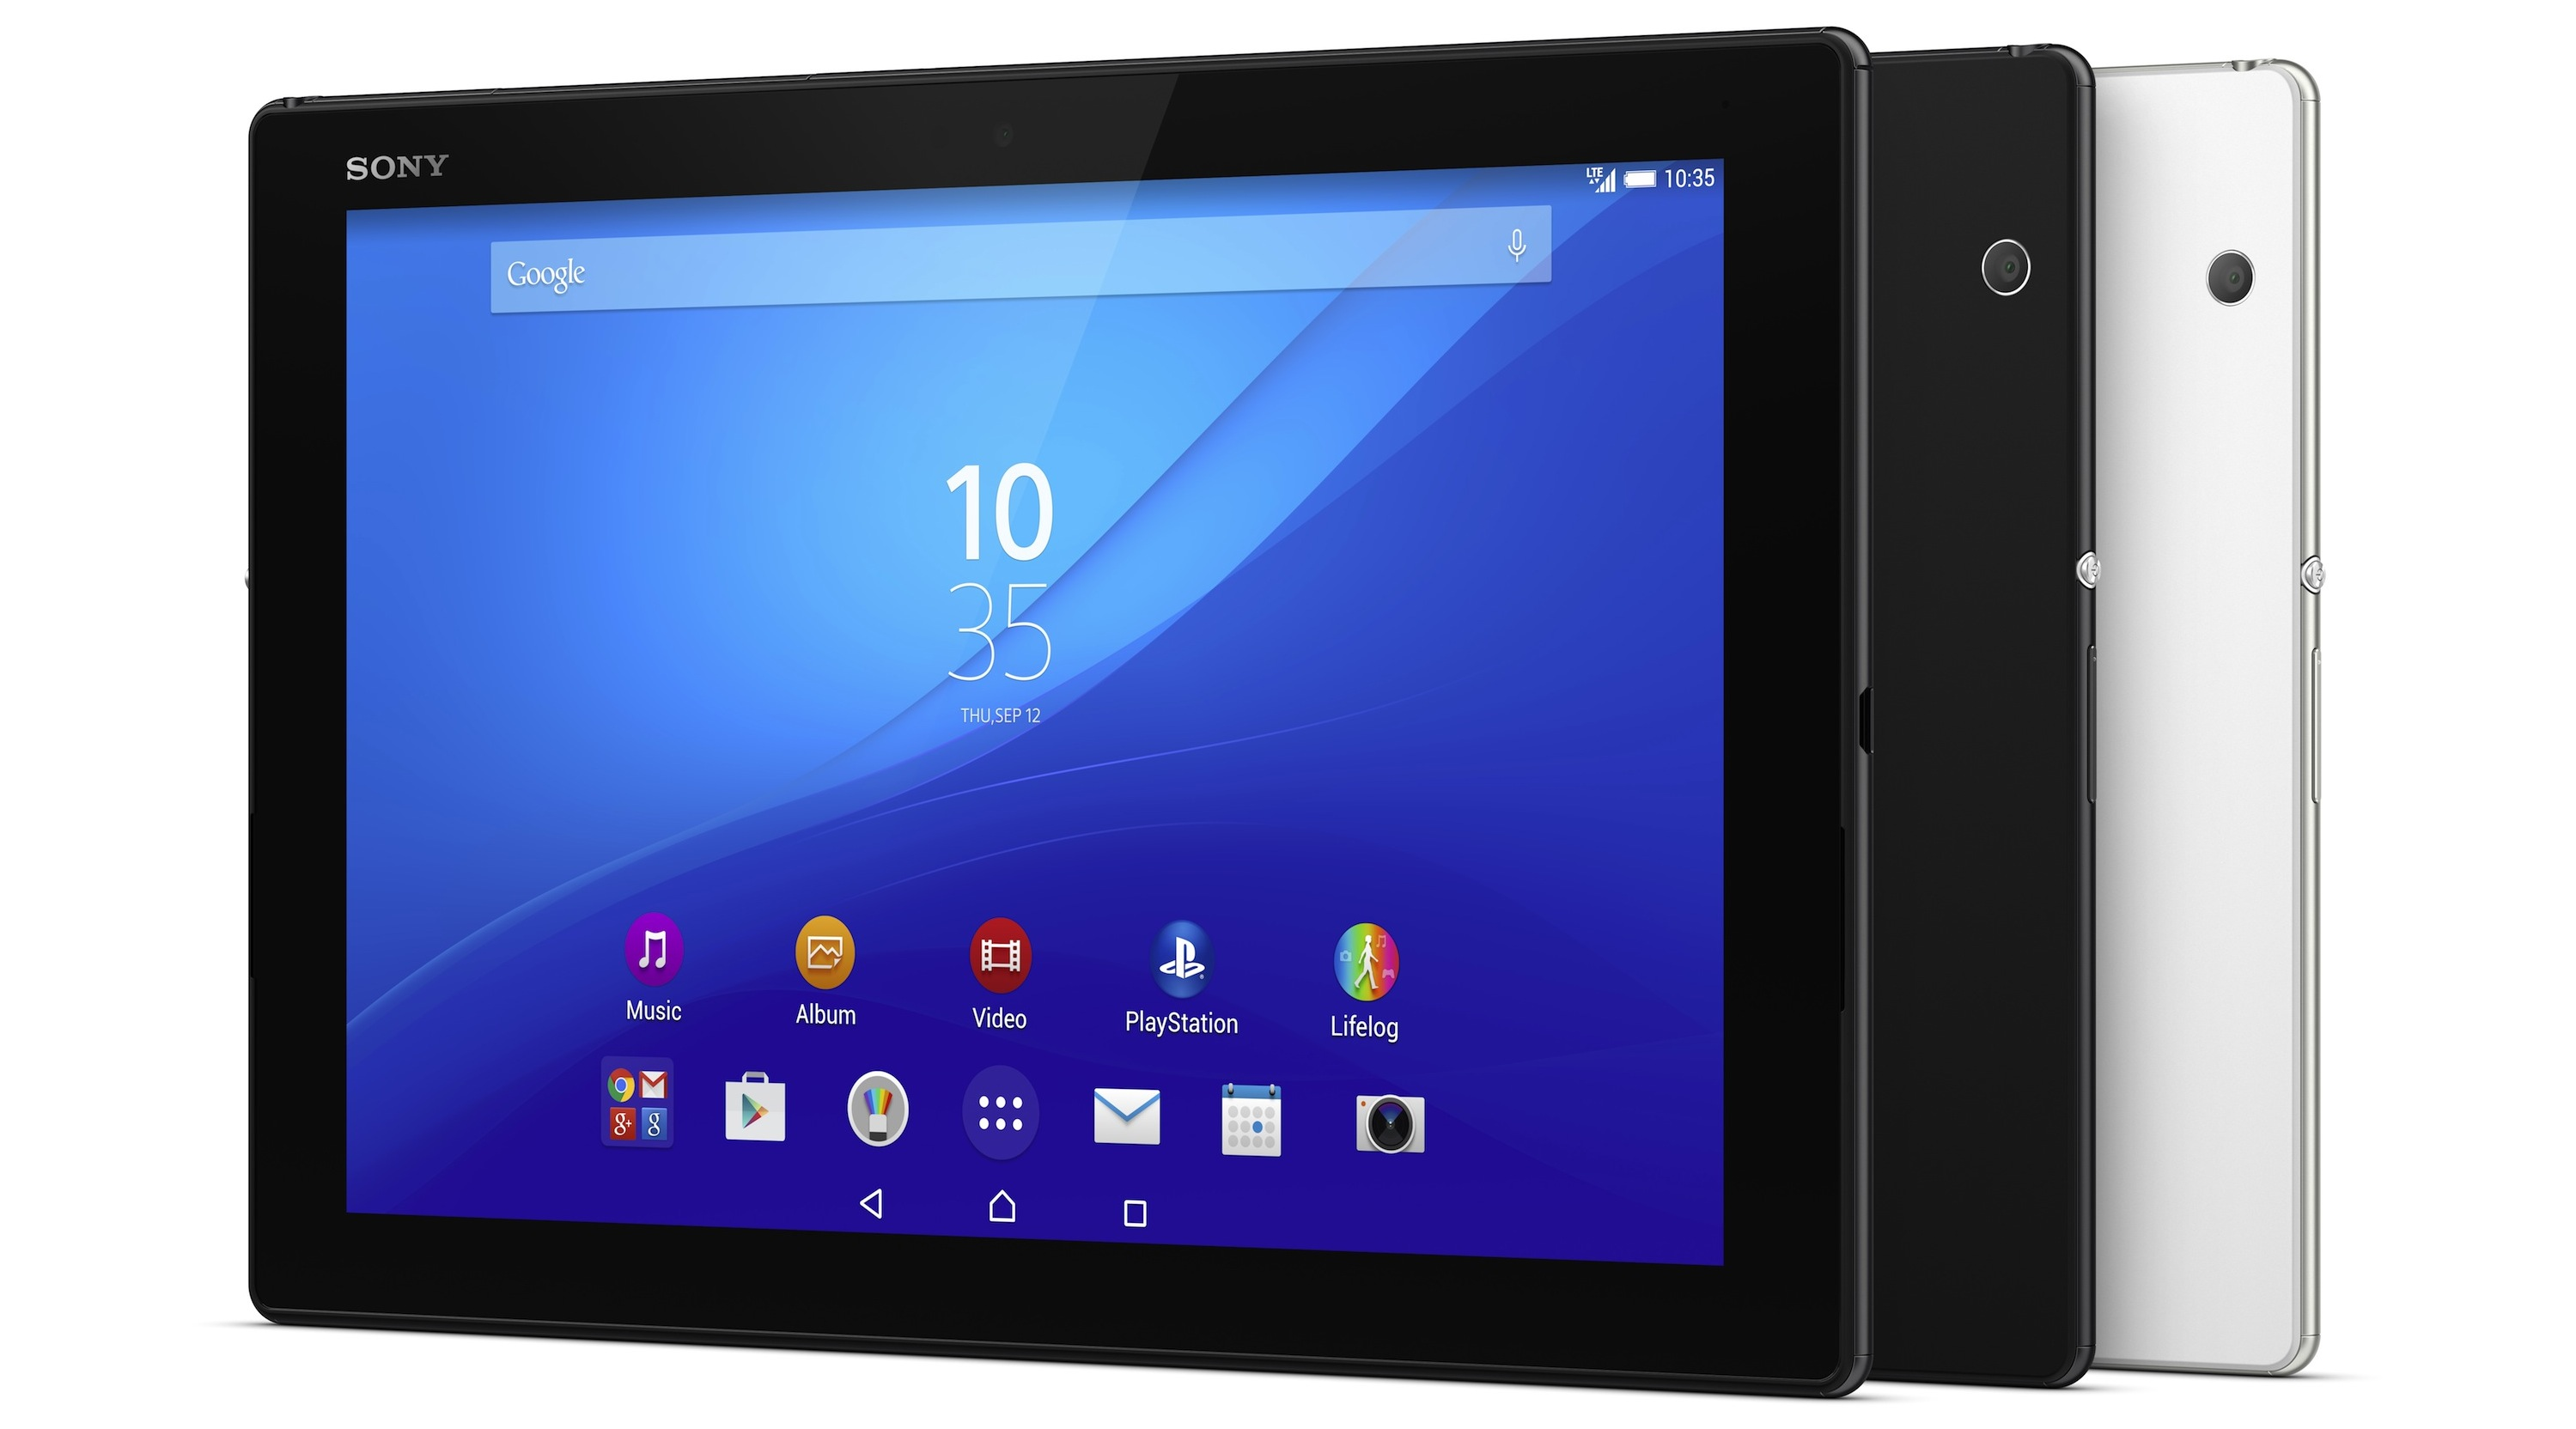 Plot Chaudhry sony xperia z4 tablet price in india mean